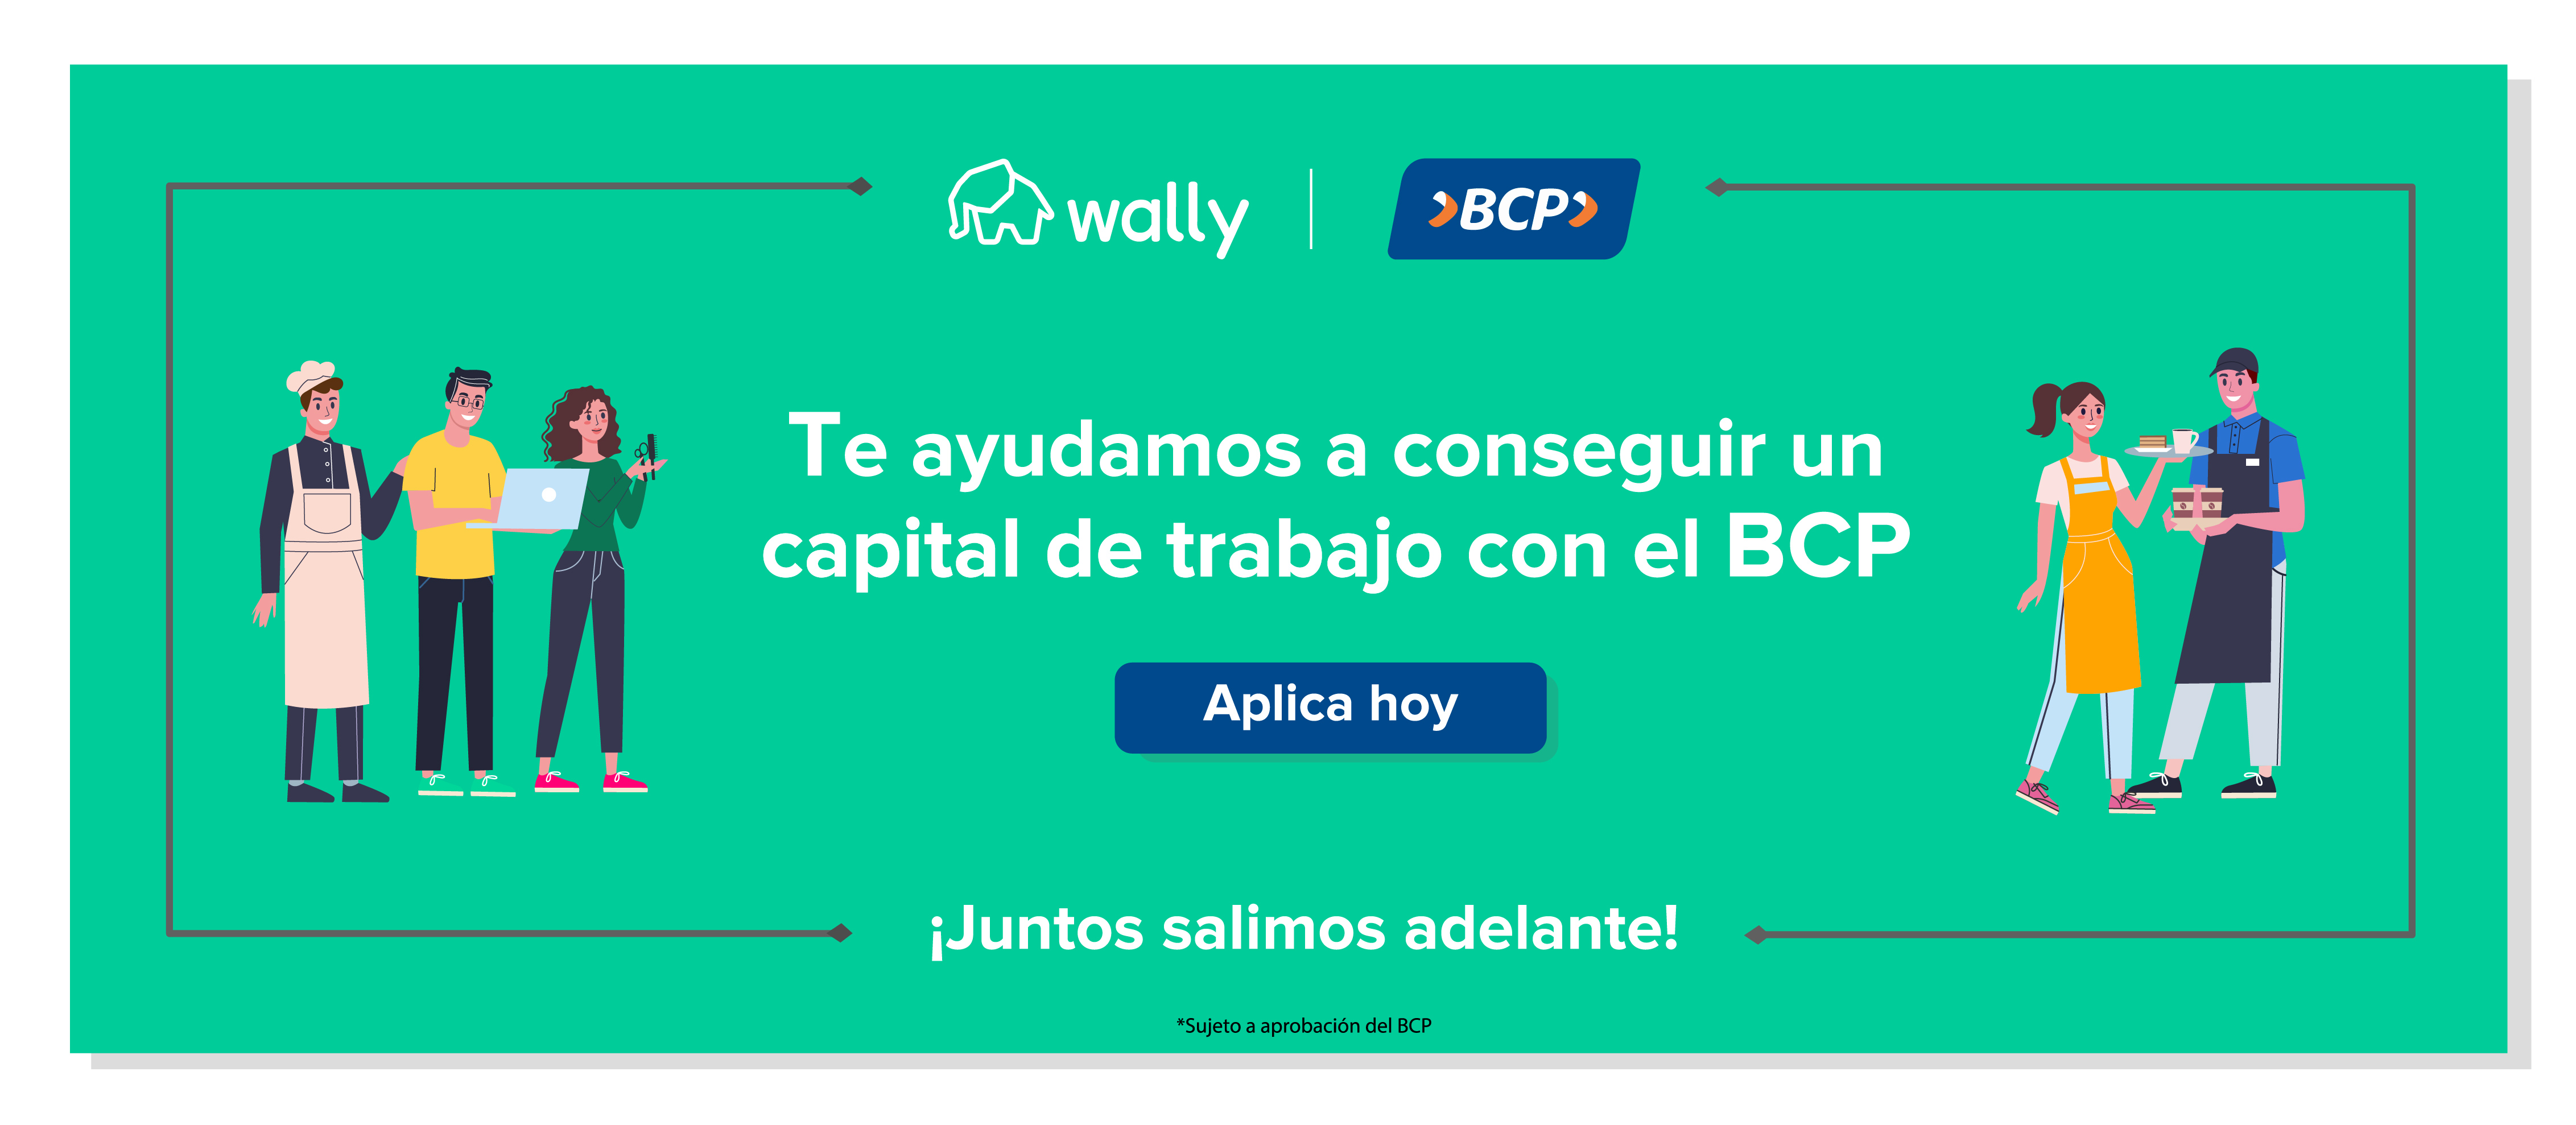 Banners Wally y BCP 27-02